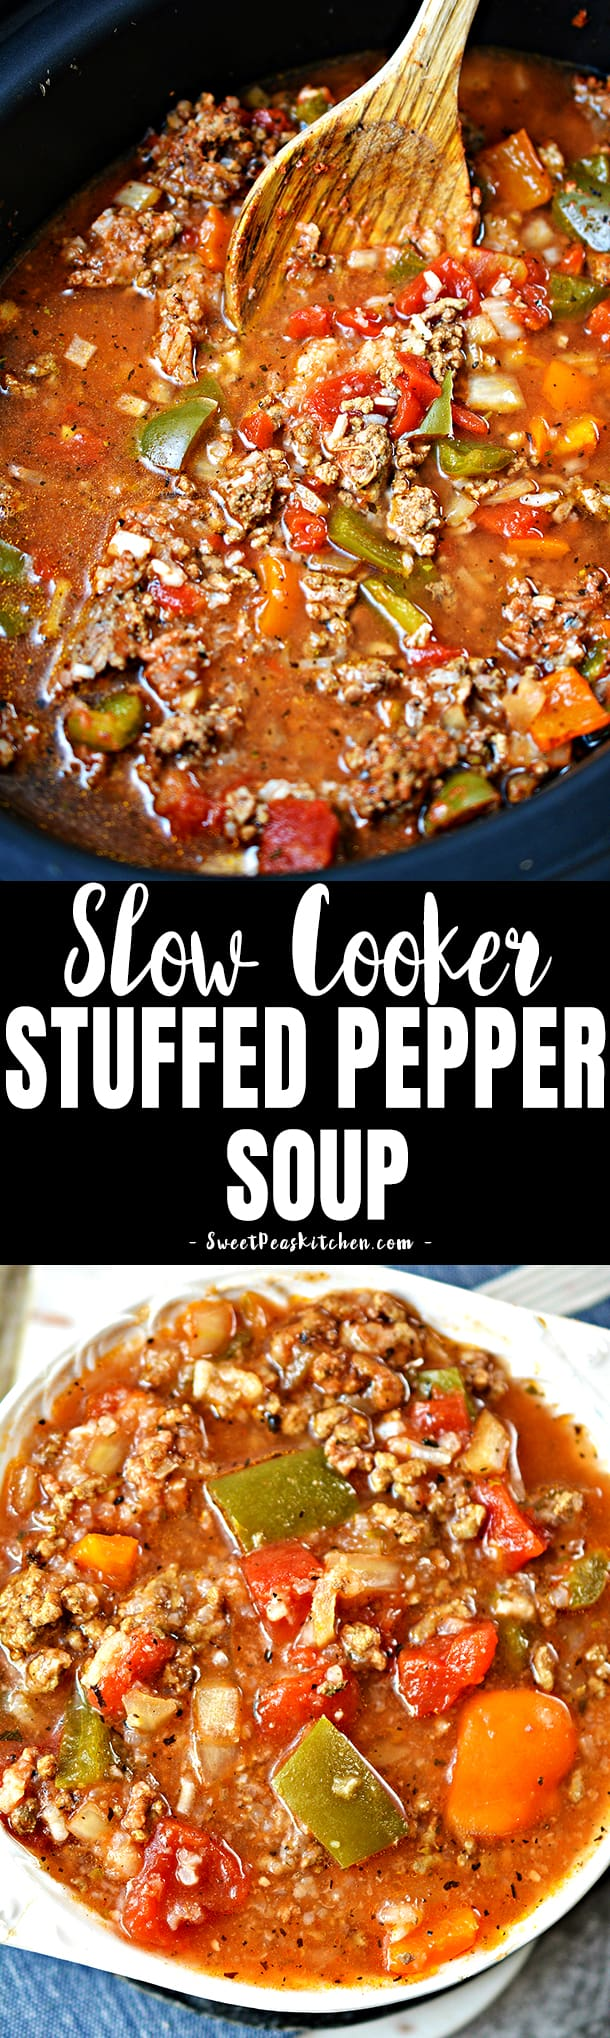 Stuffed Pepper Soup in the Slow Cooker